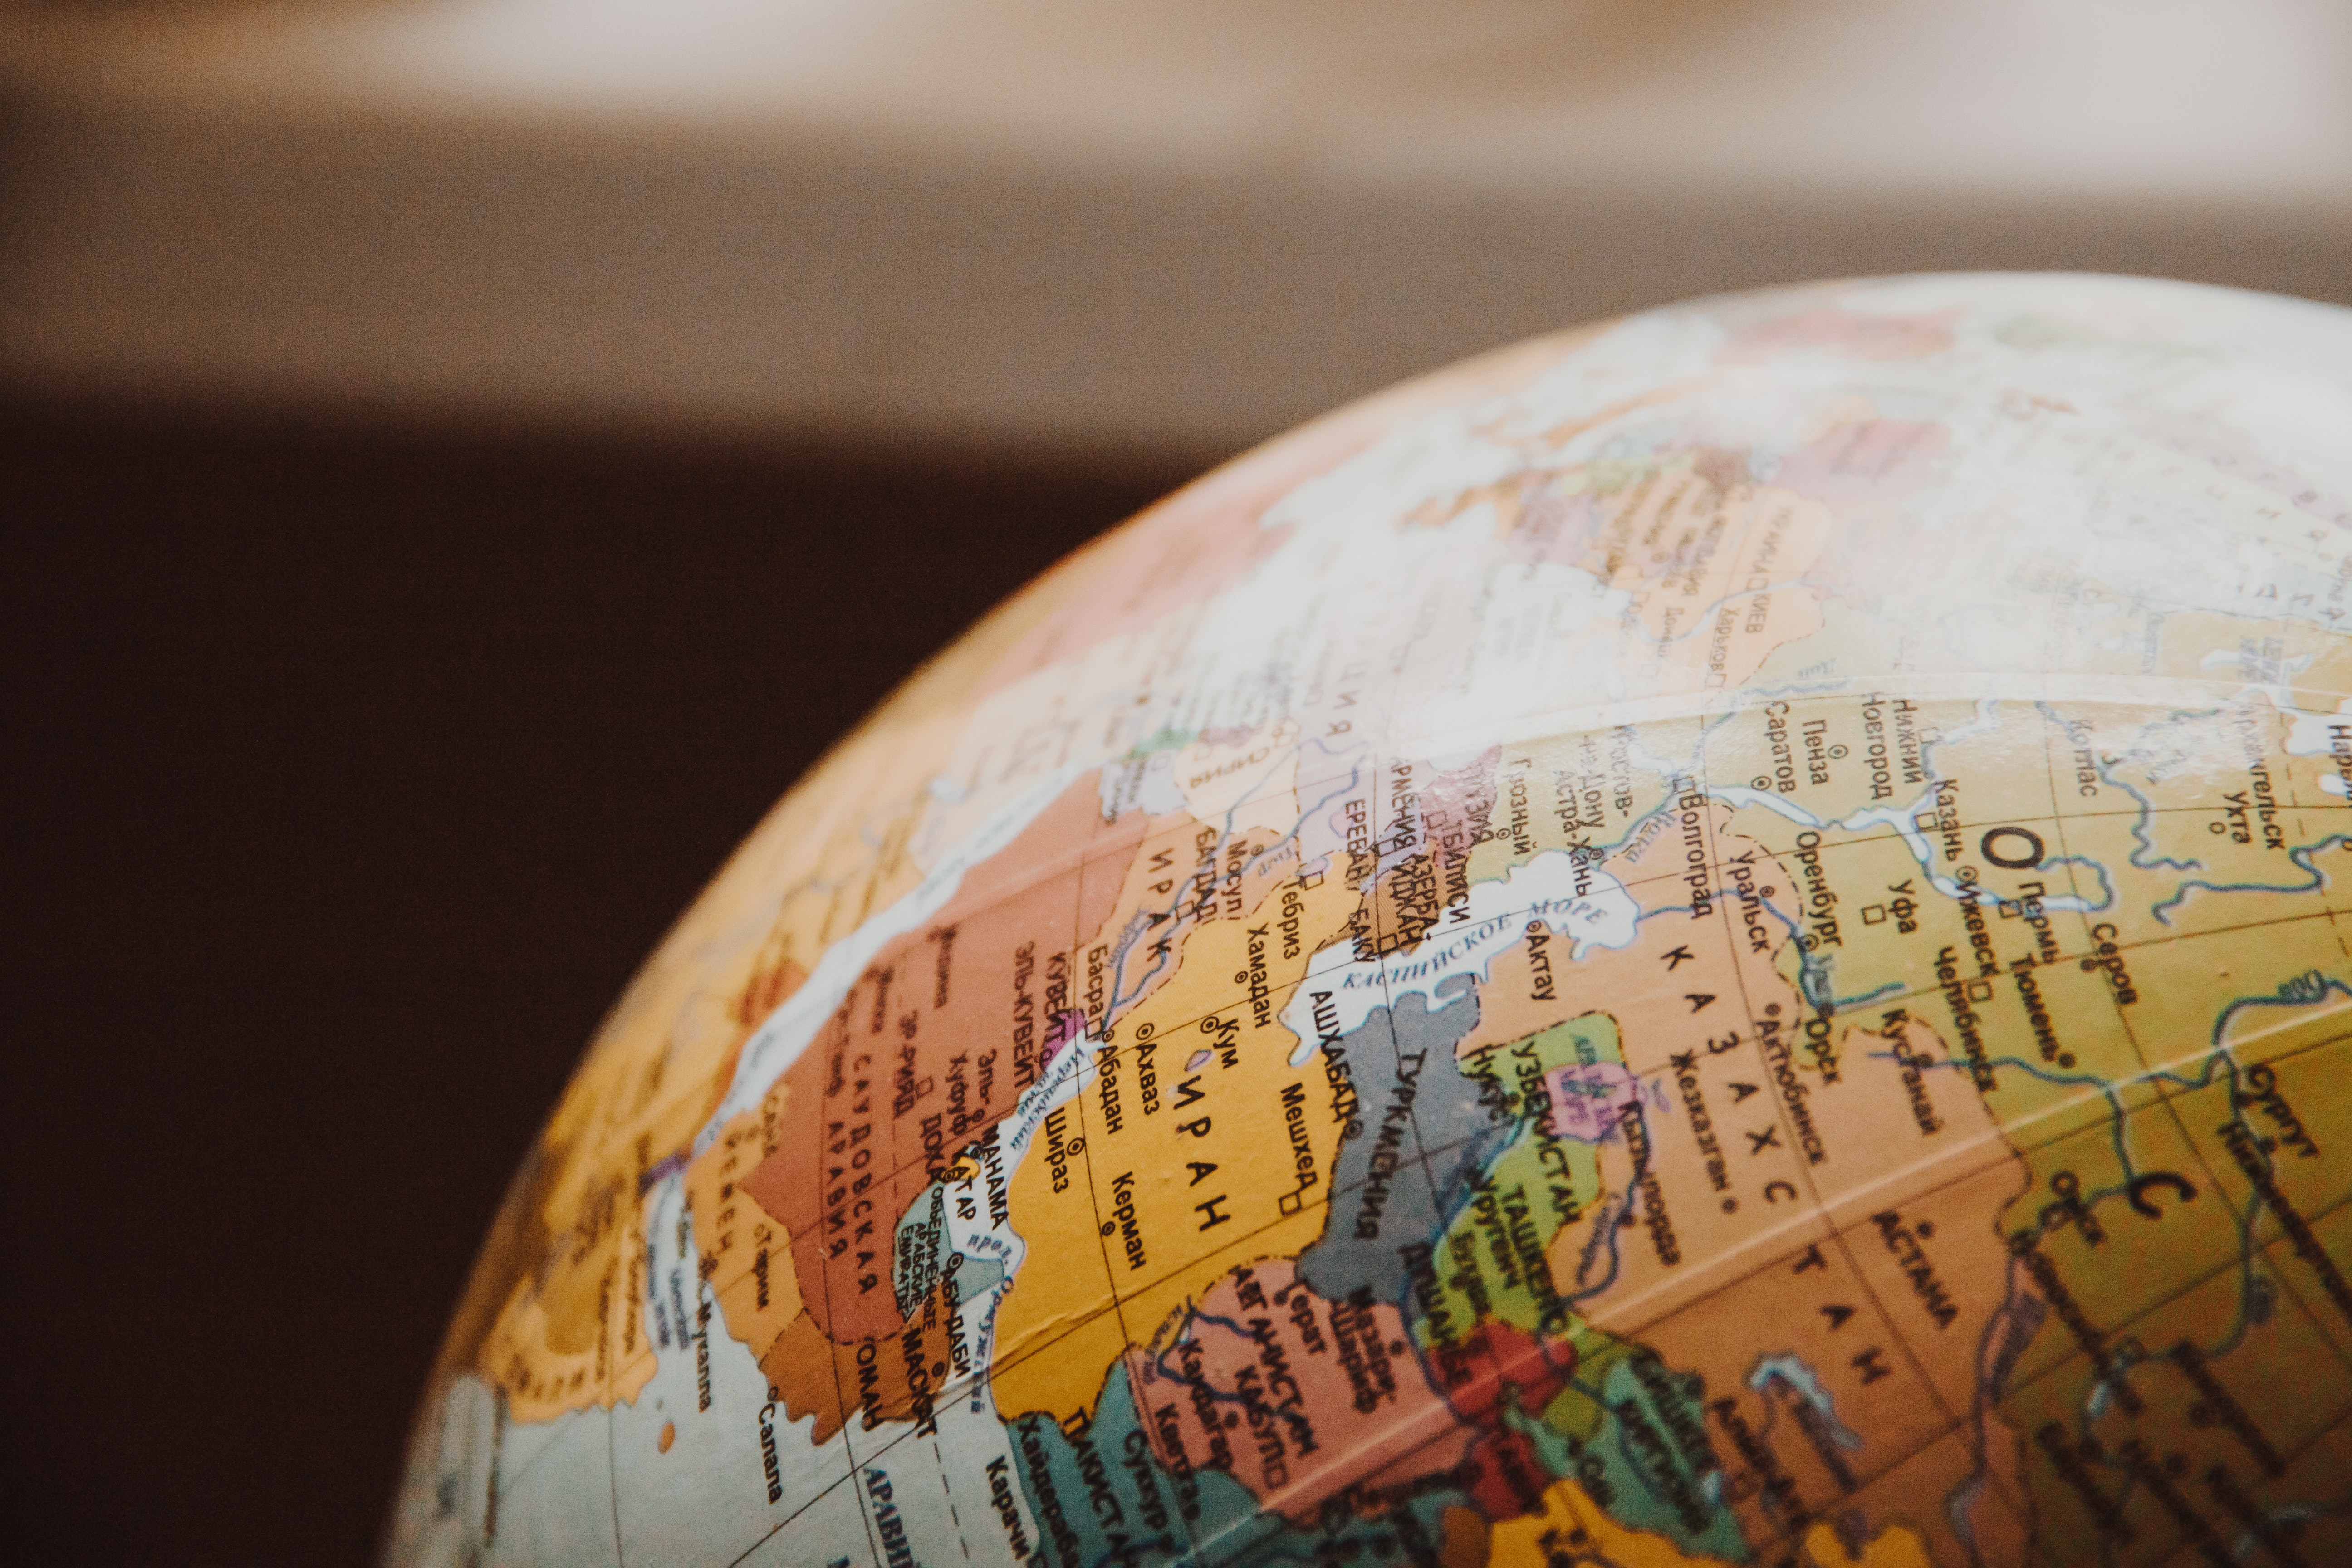 6 Incentive Travel Trends for 2018 to Focus On